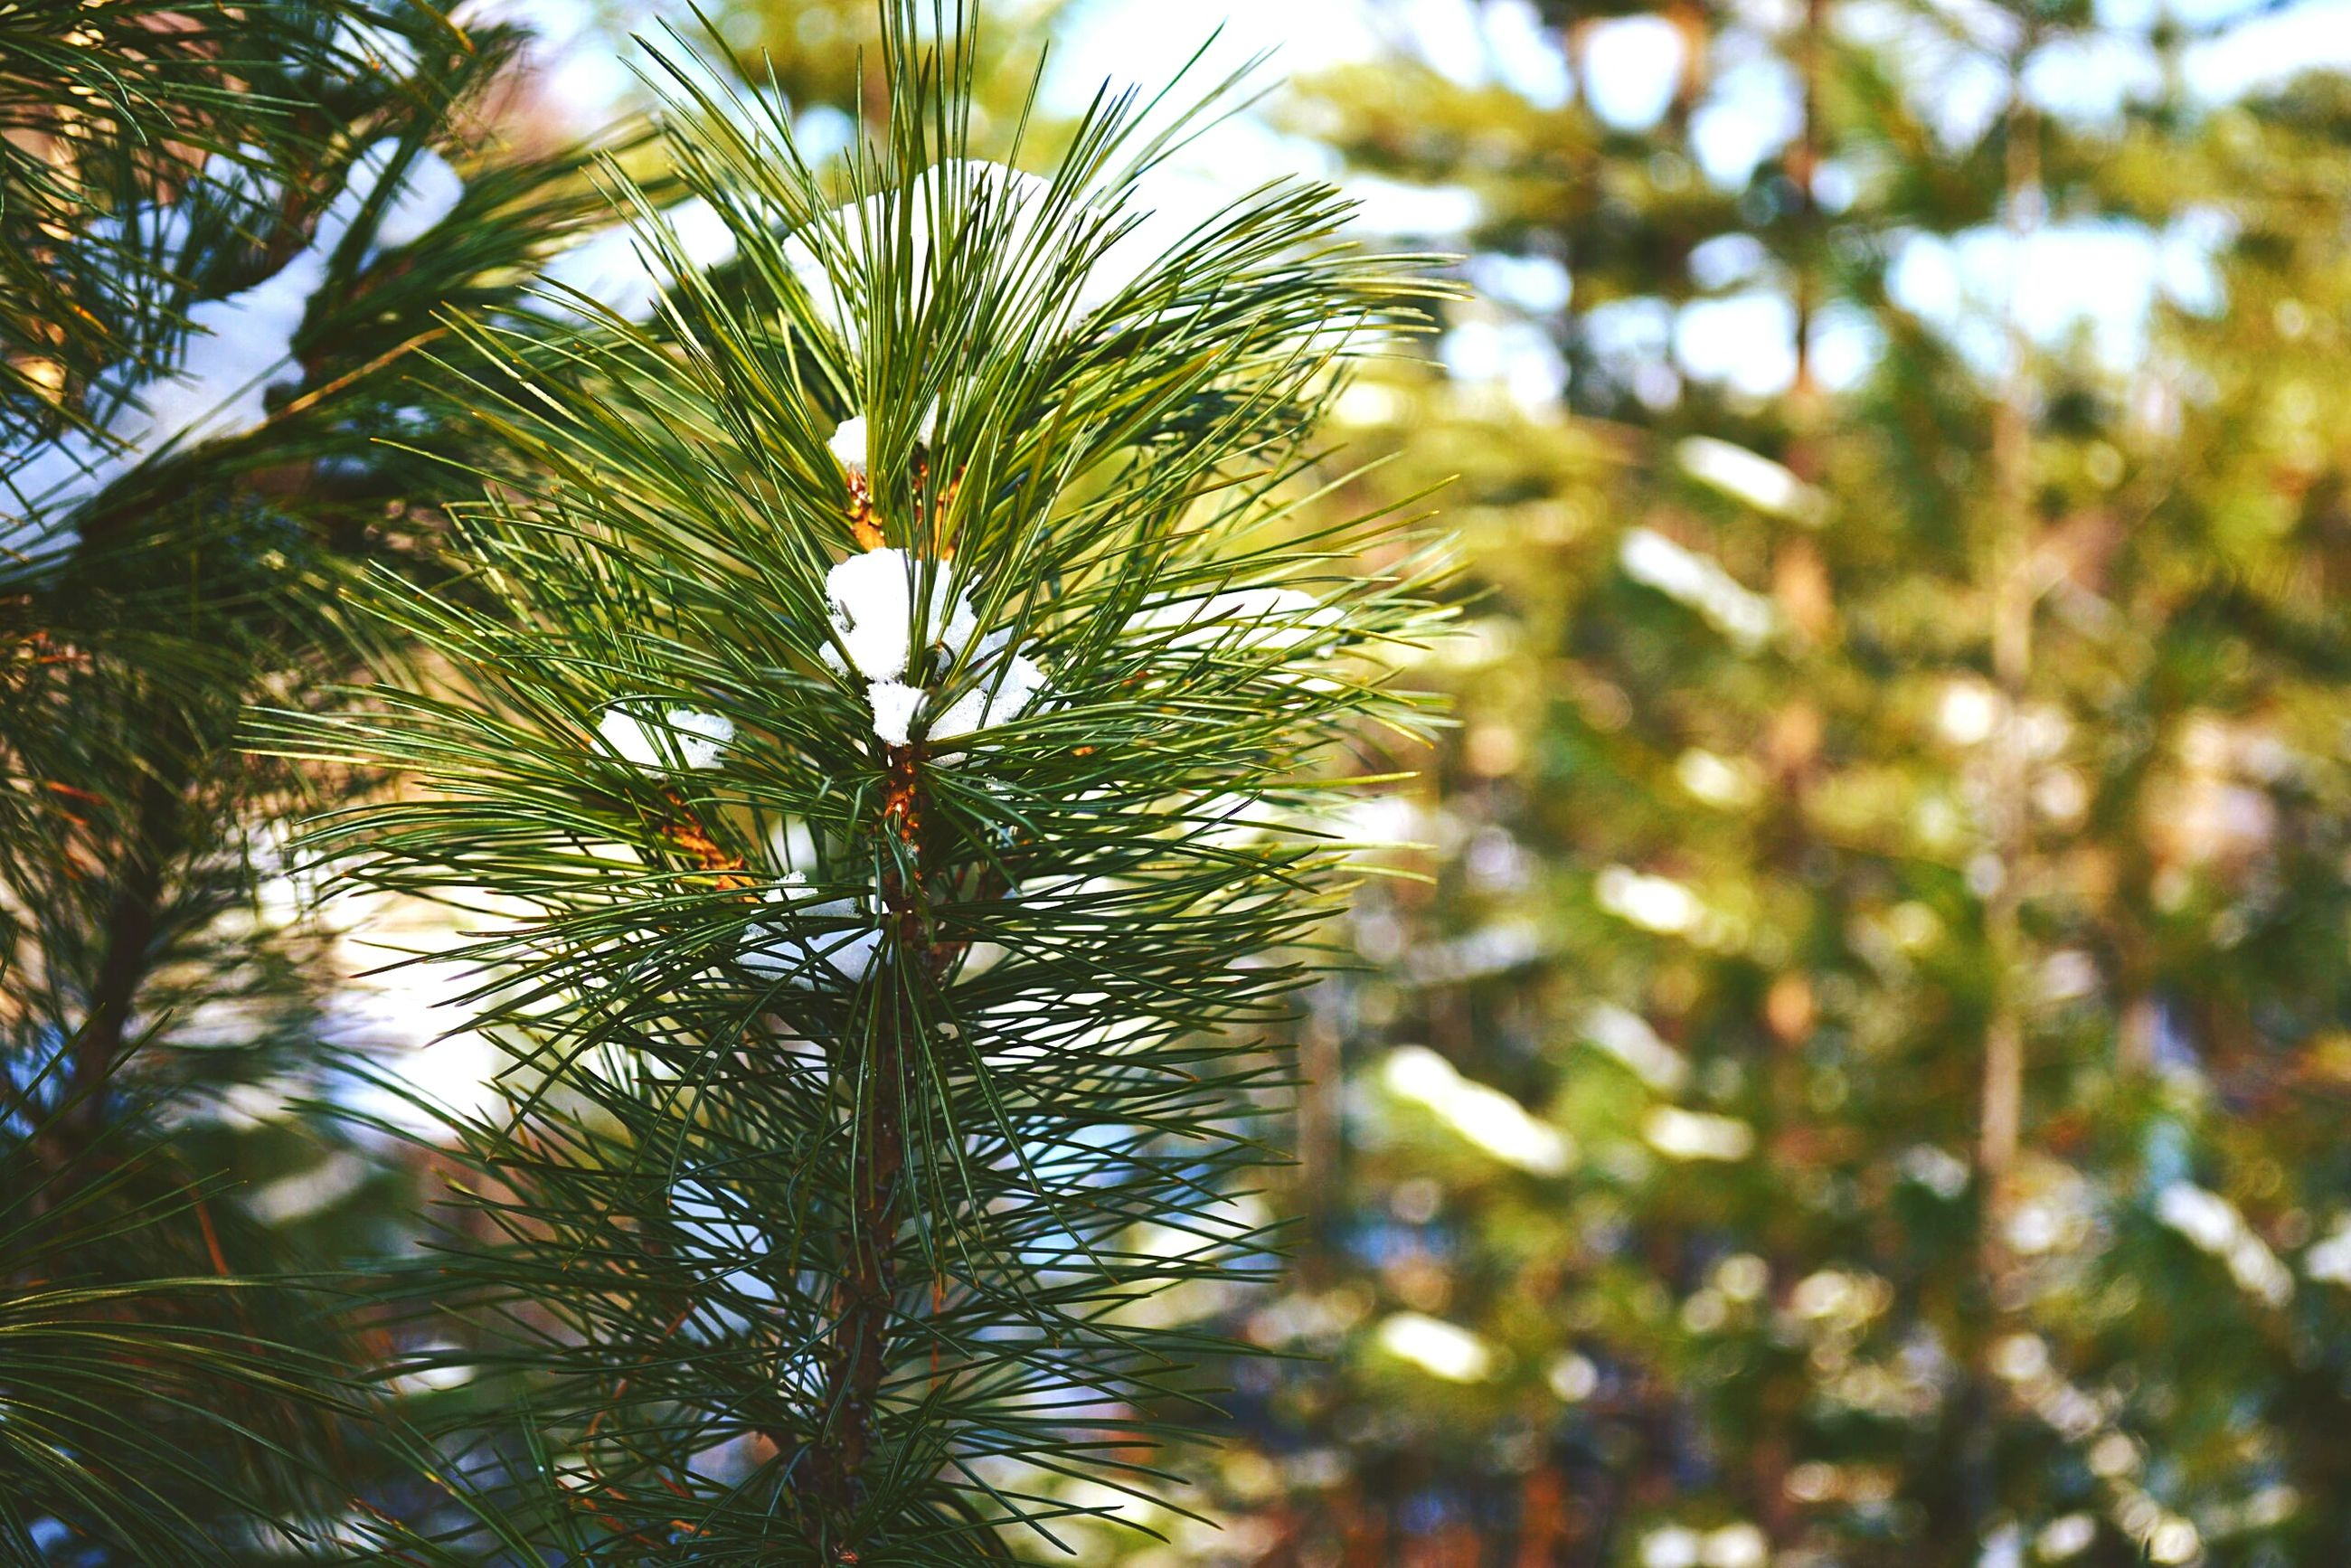 growth, nature, tree, leaf, close-up, low angle view, branch, beauty in nature, green color, tranquility, focus on foreground, plant, freshness, day, sunlight, pine tree, outdoors, no people, growing, selective focus